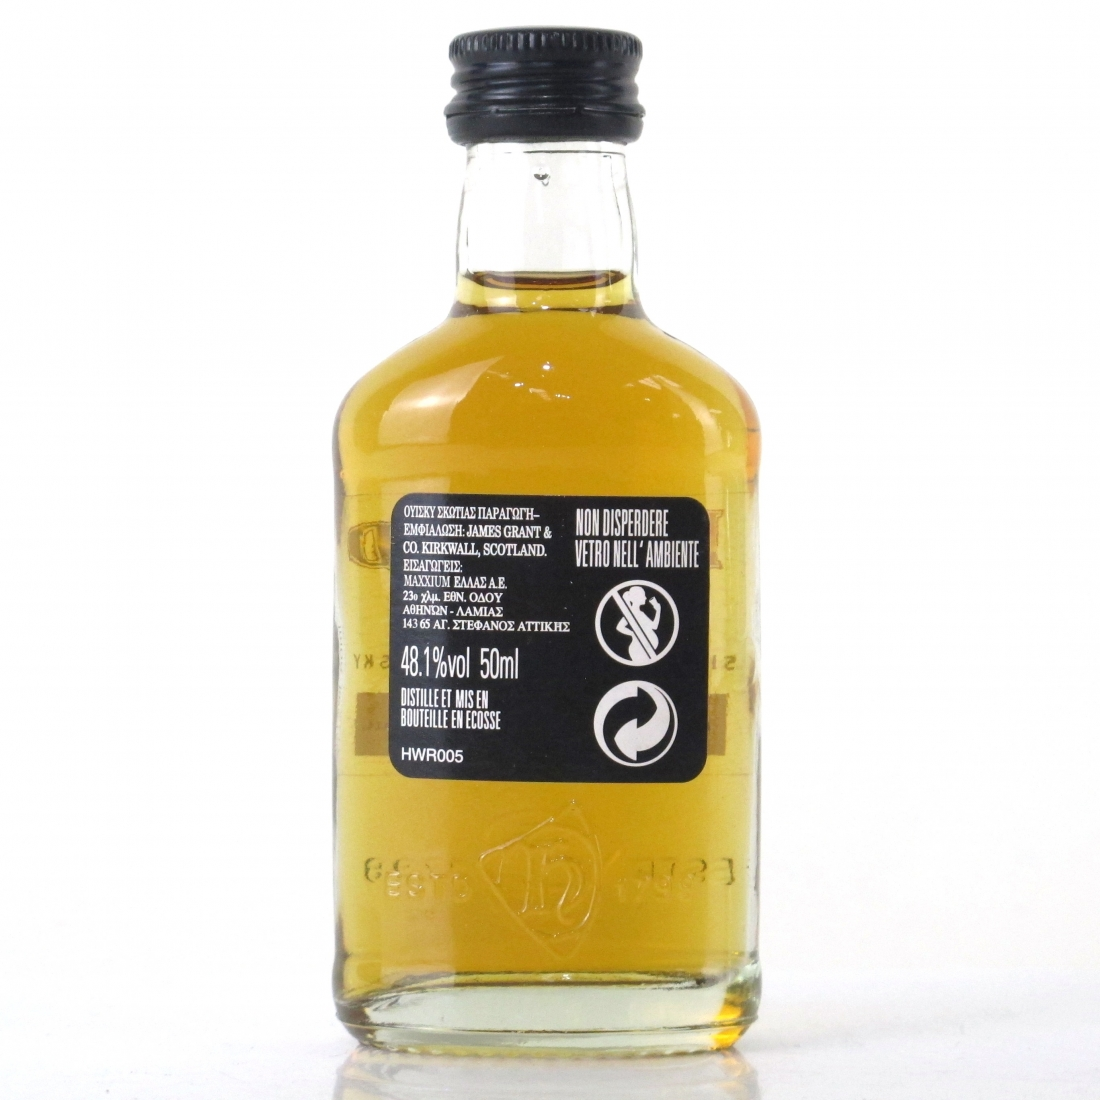 Highland Park 30 Year Old 5cl Miniature